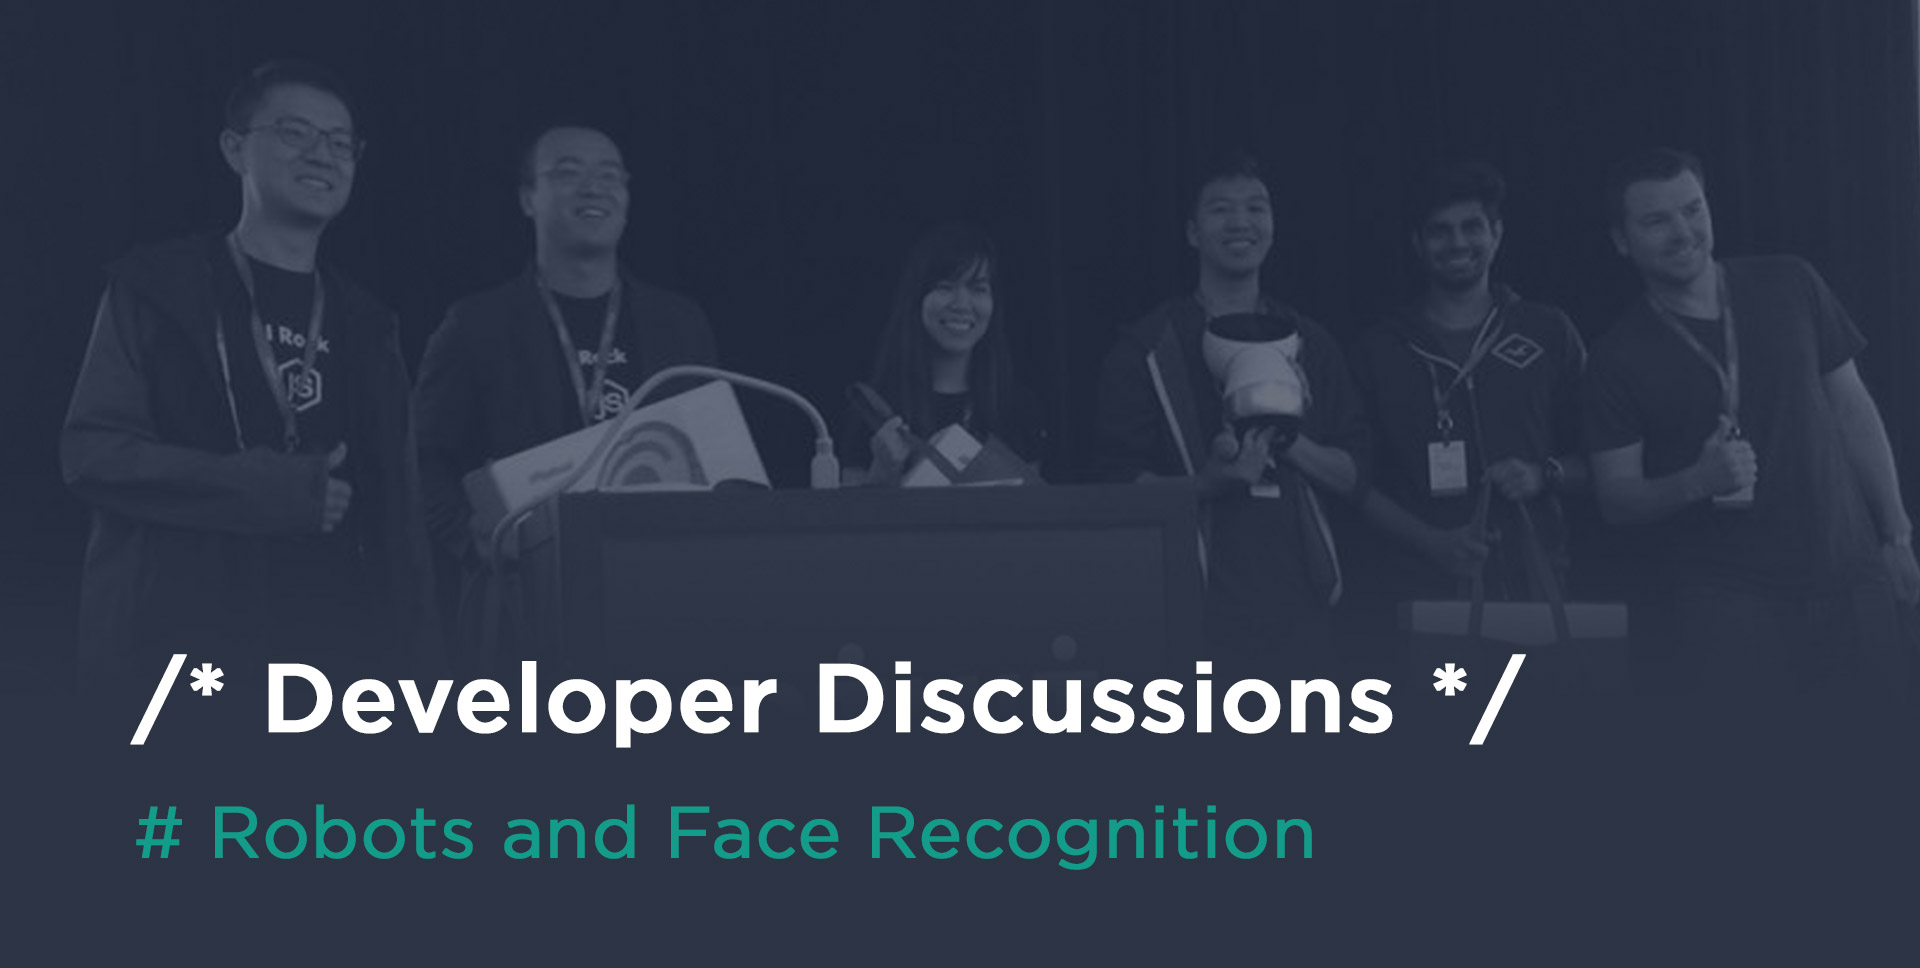 Photo of a team of developers on stage at a hackathon about robots and face recognition